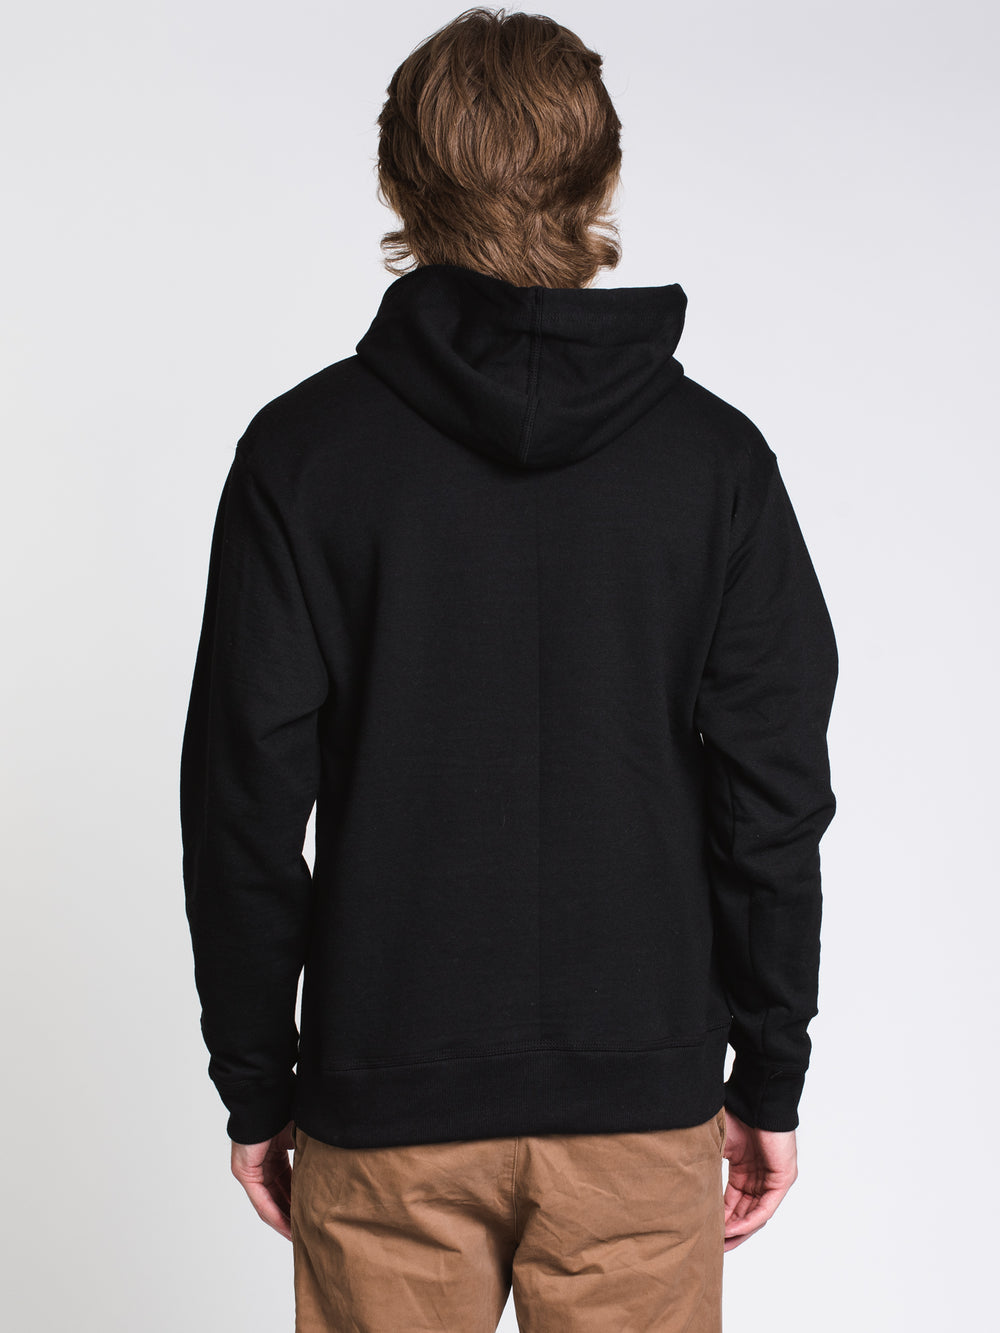 MENS COLOUR POP PULLOVER HOODIE - BLACK/RED